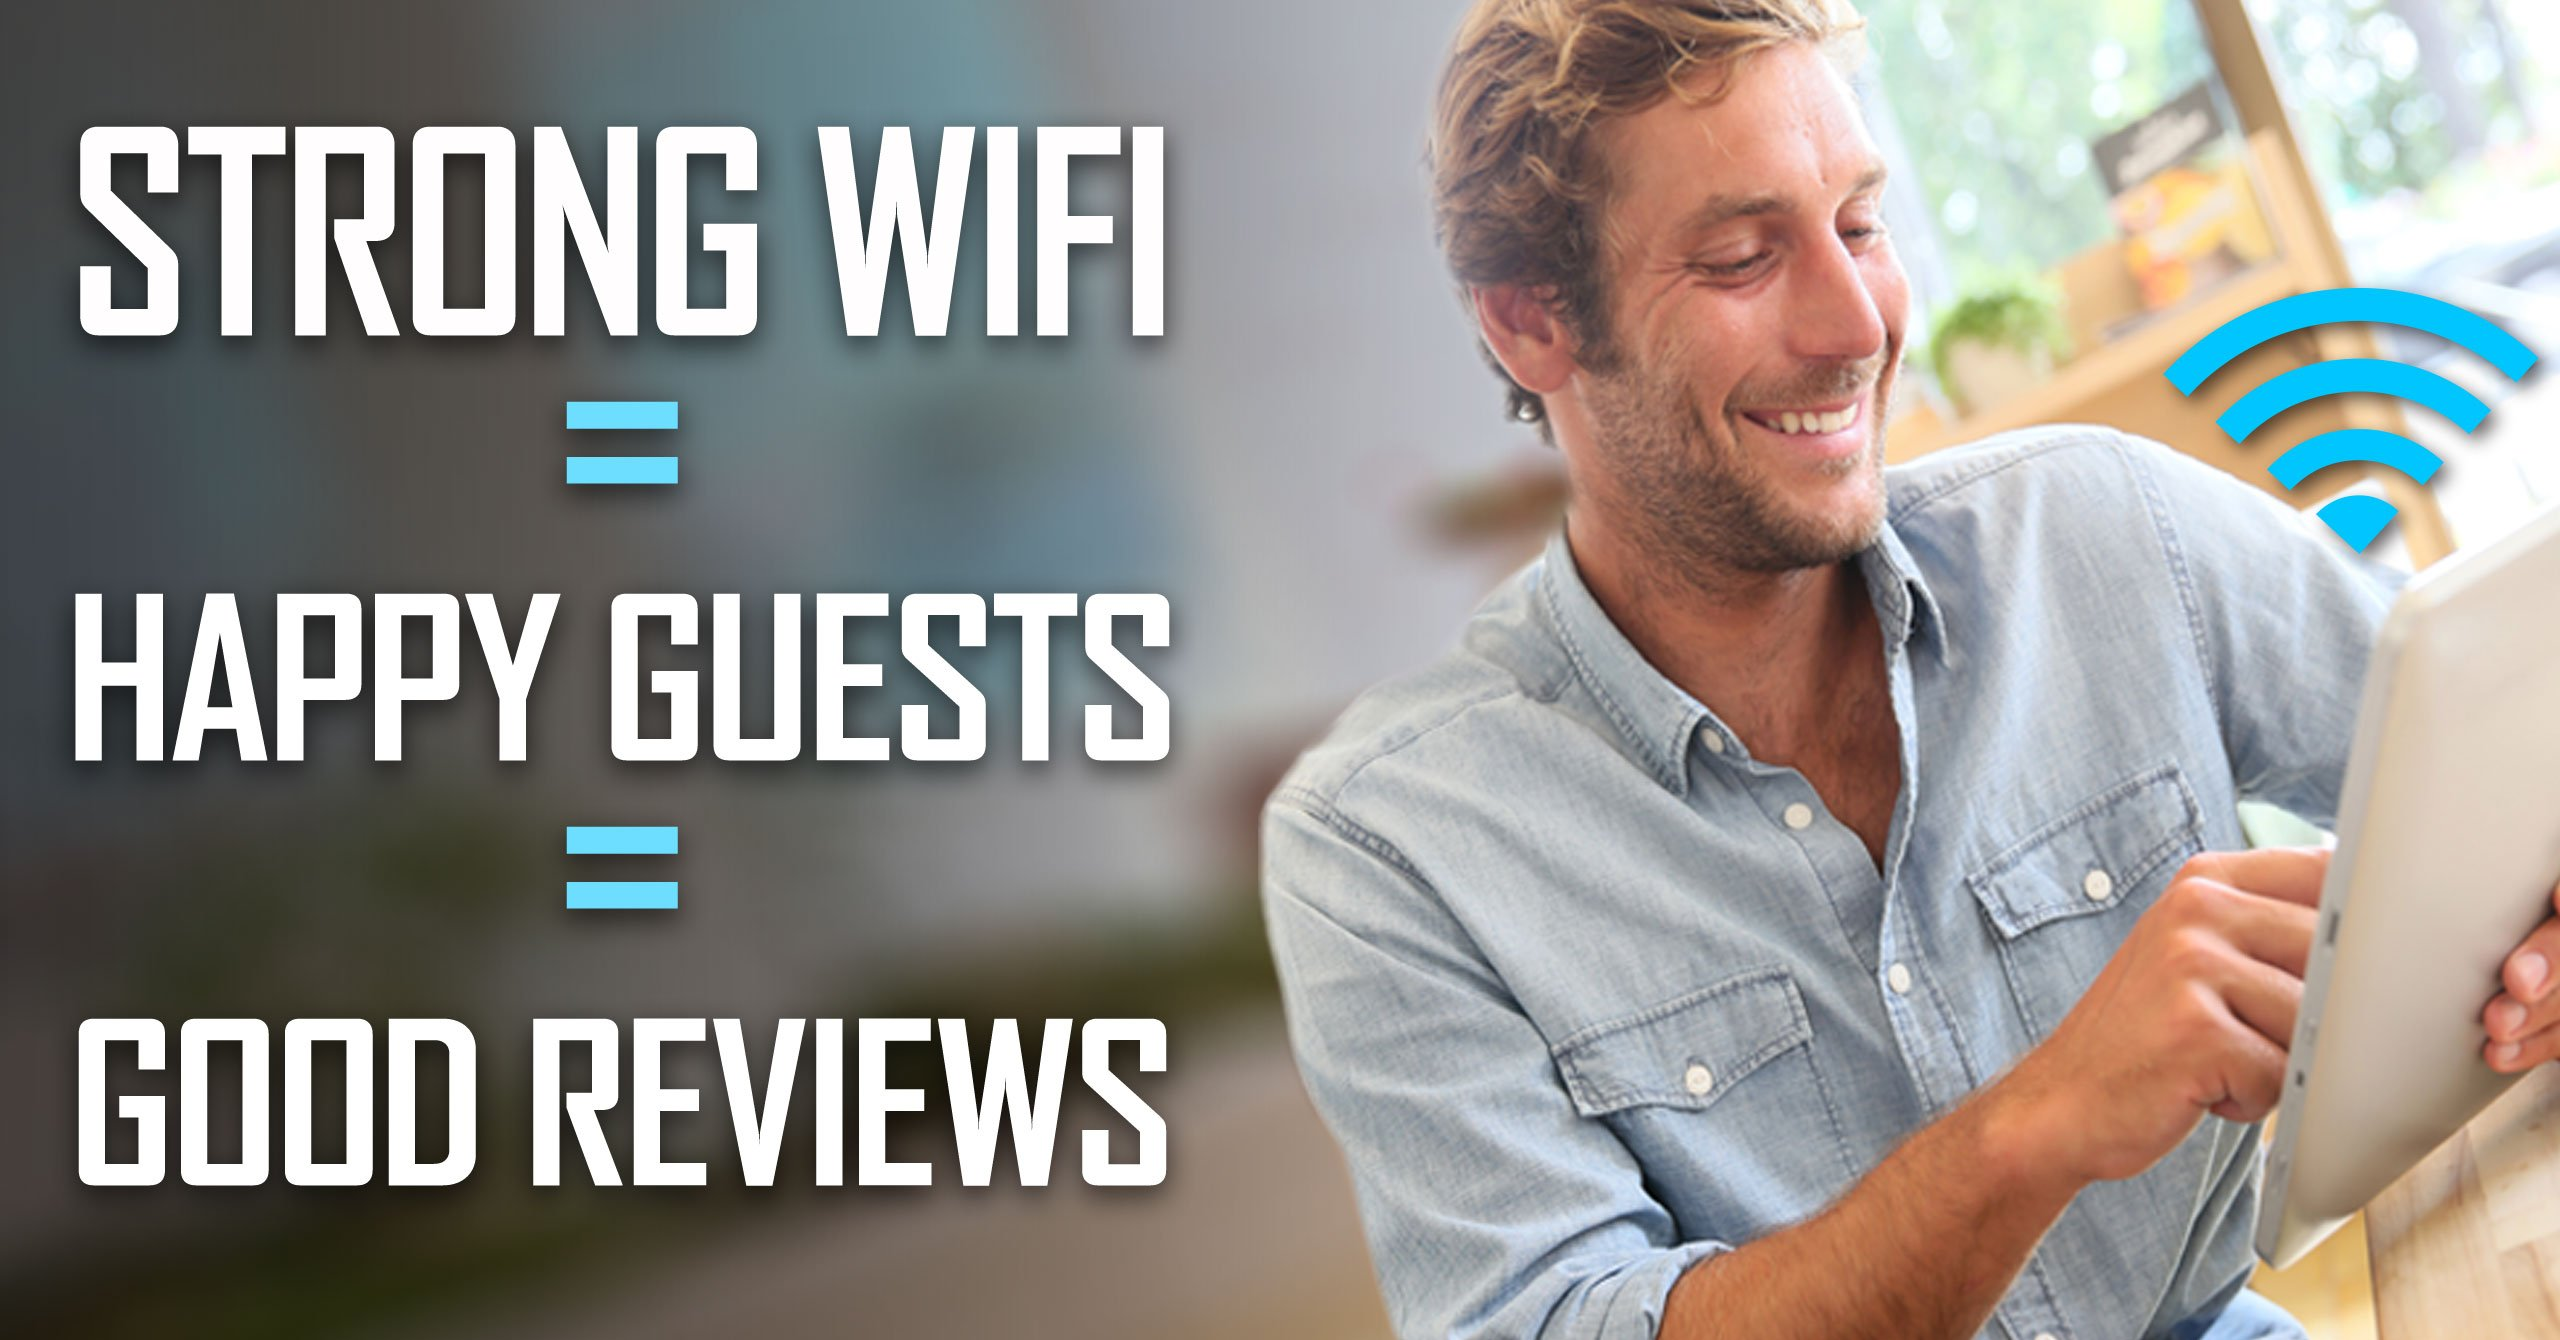 Strong WiFi = Happy Guests = Good Reviews